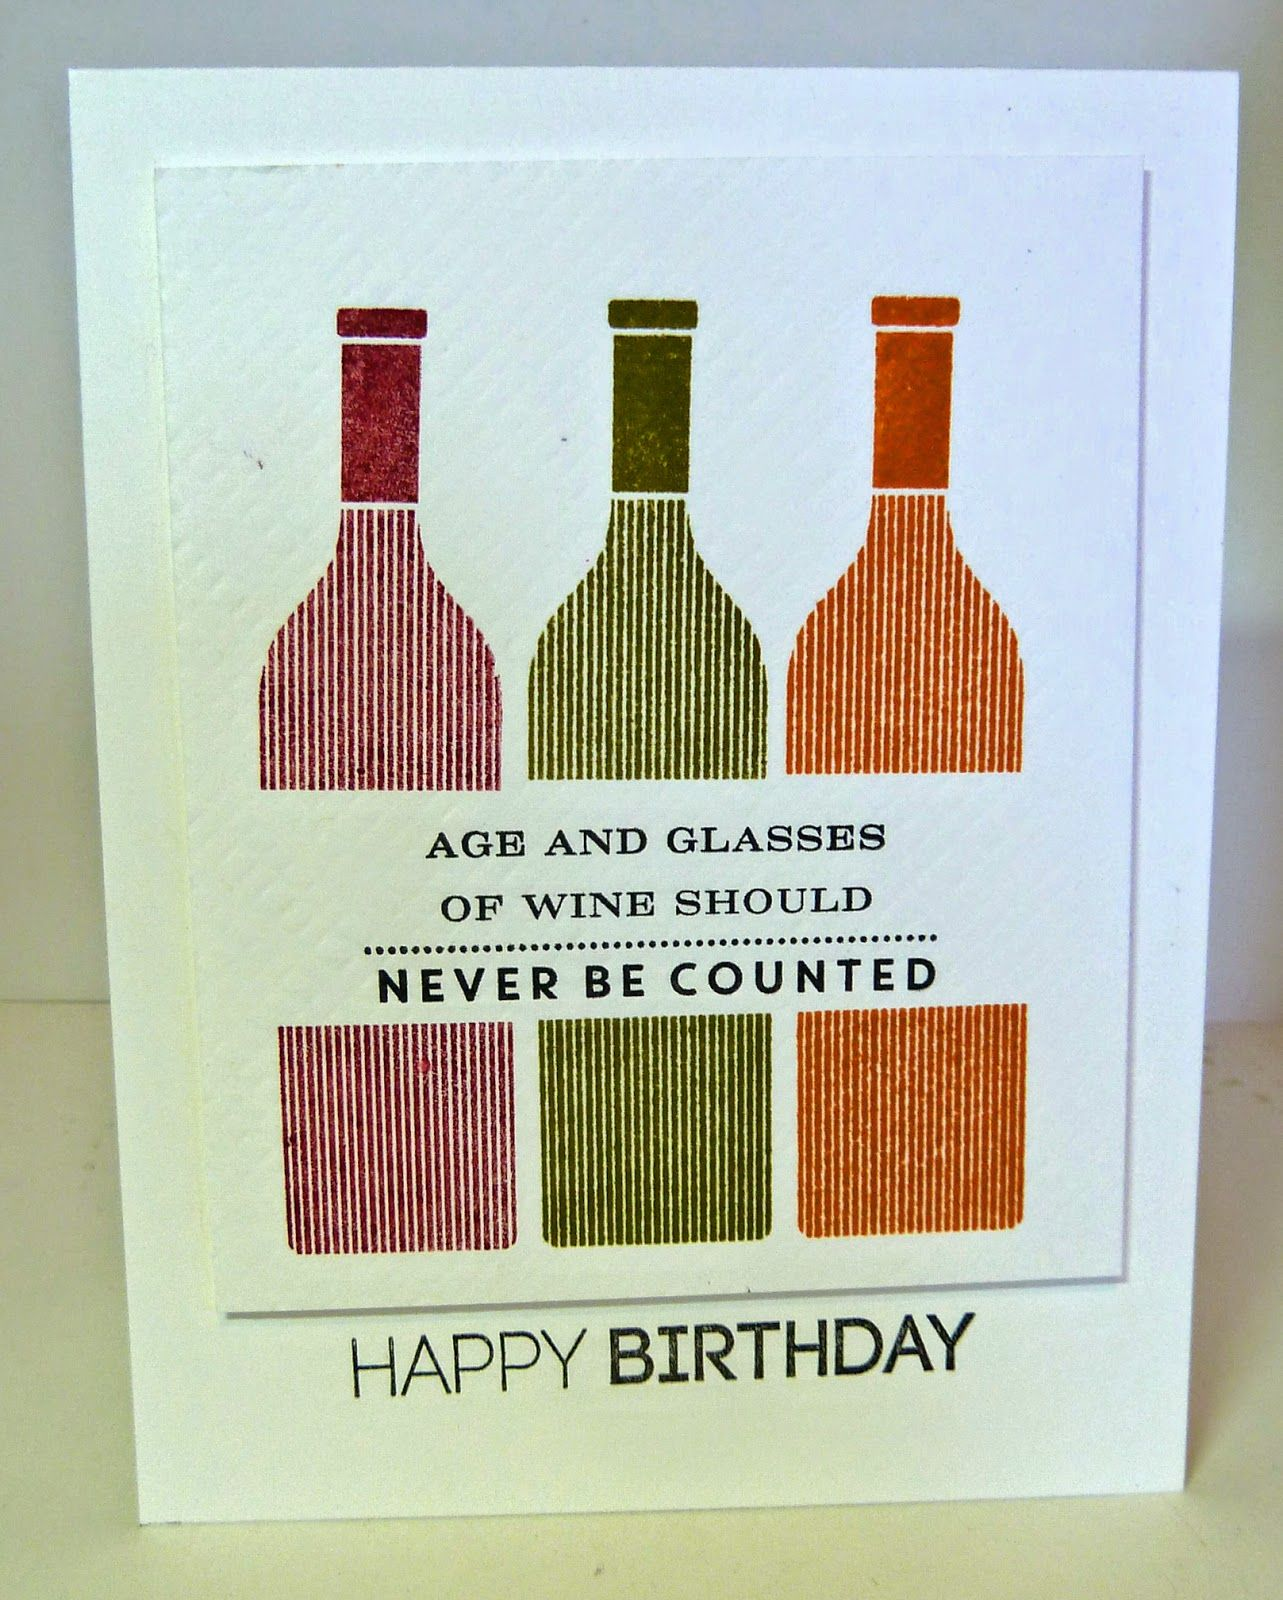 Elegant wine birthday card images eccleshallfc cards by the sea uncorked birthday cards papertrey bookmarktalkfo Image collections